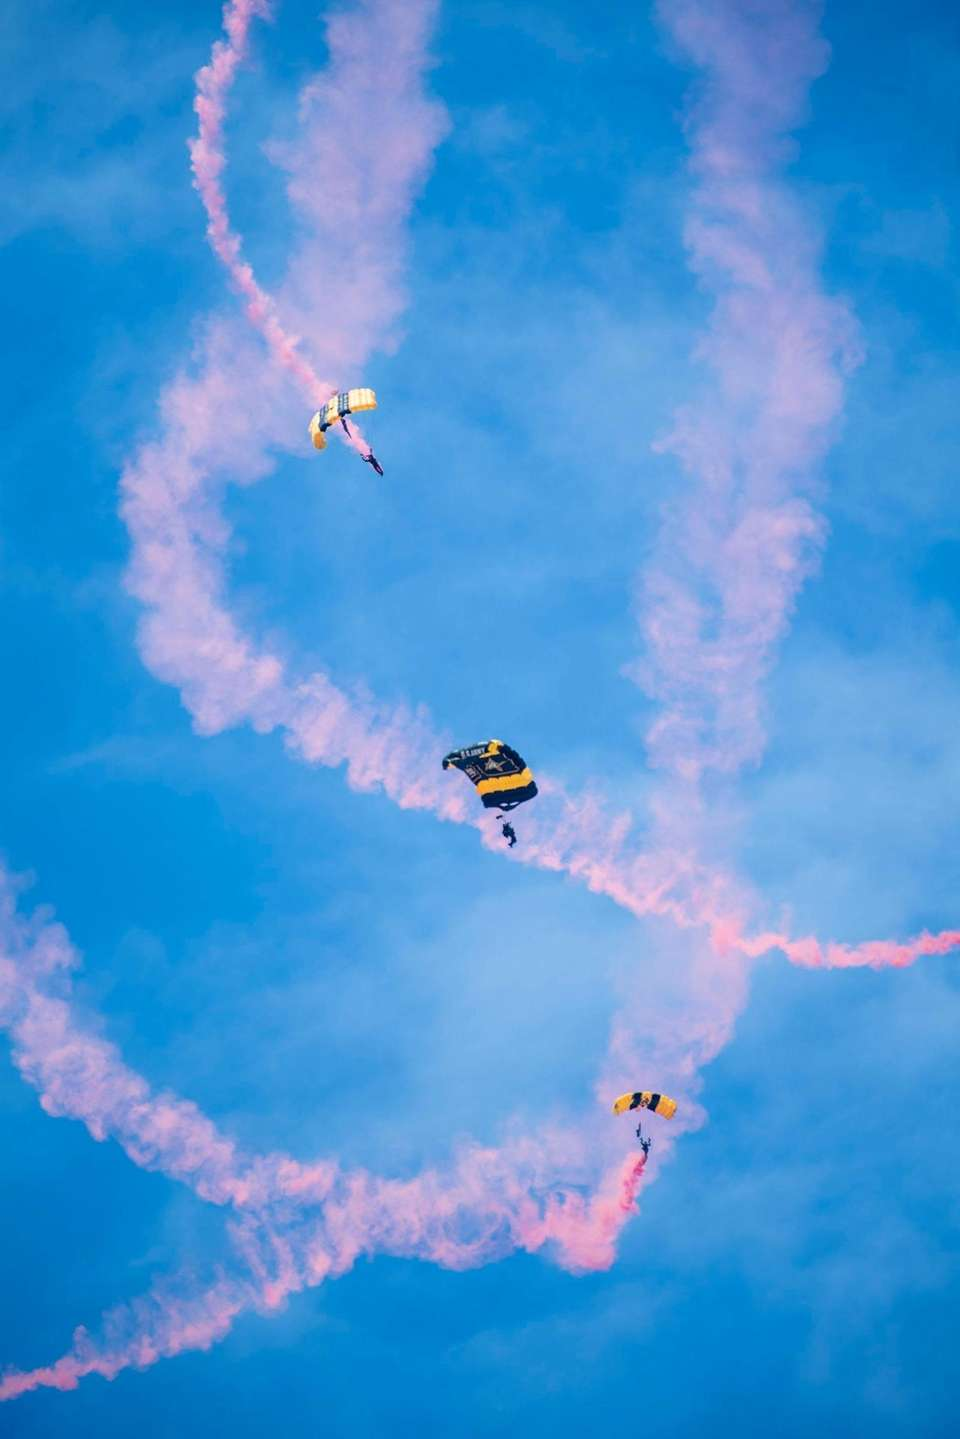 Members of the U.S. Army Golden Knights parachute